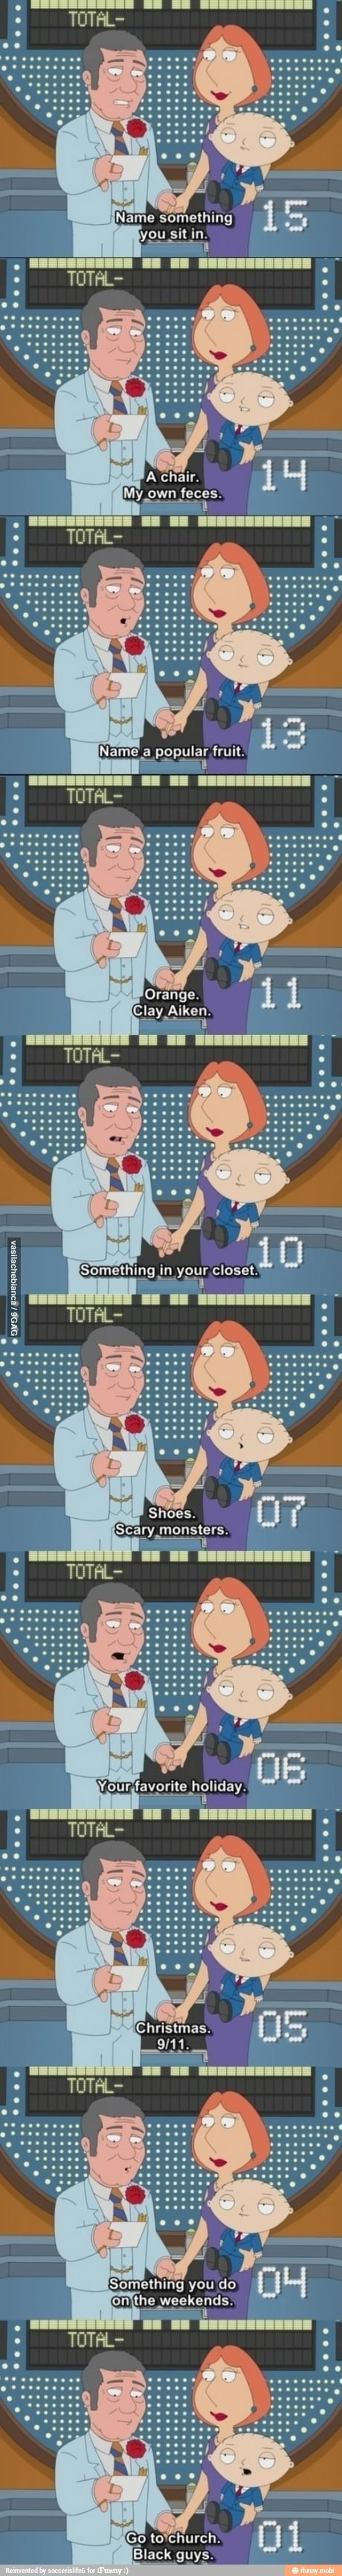 Lois and Stewie s answers funny pictures funny photos funny images funny pics funny quotes